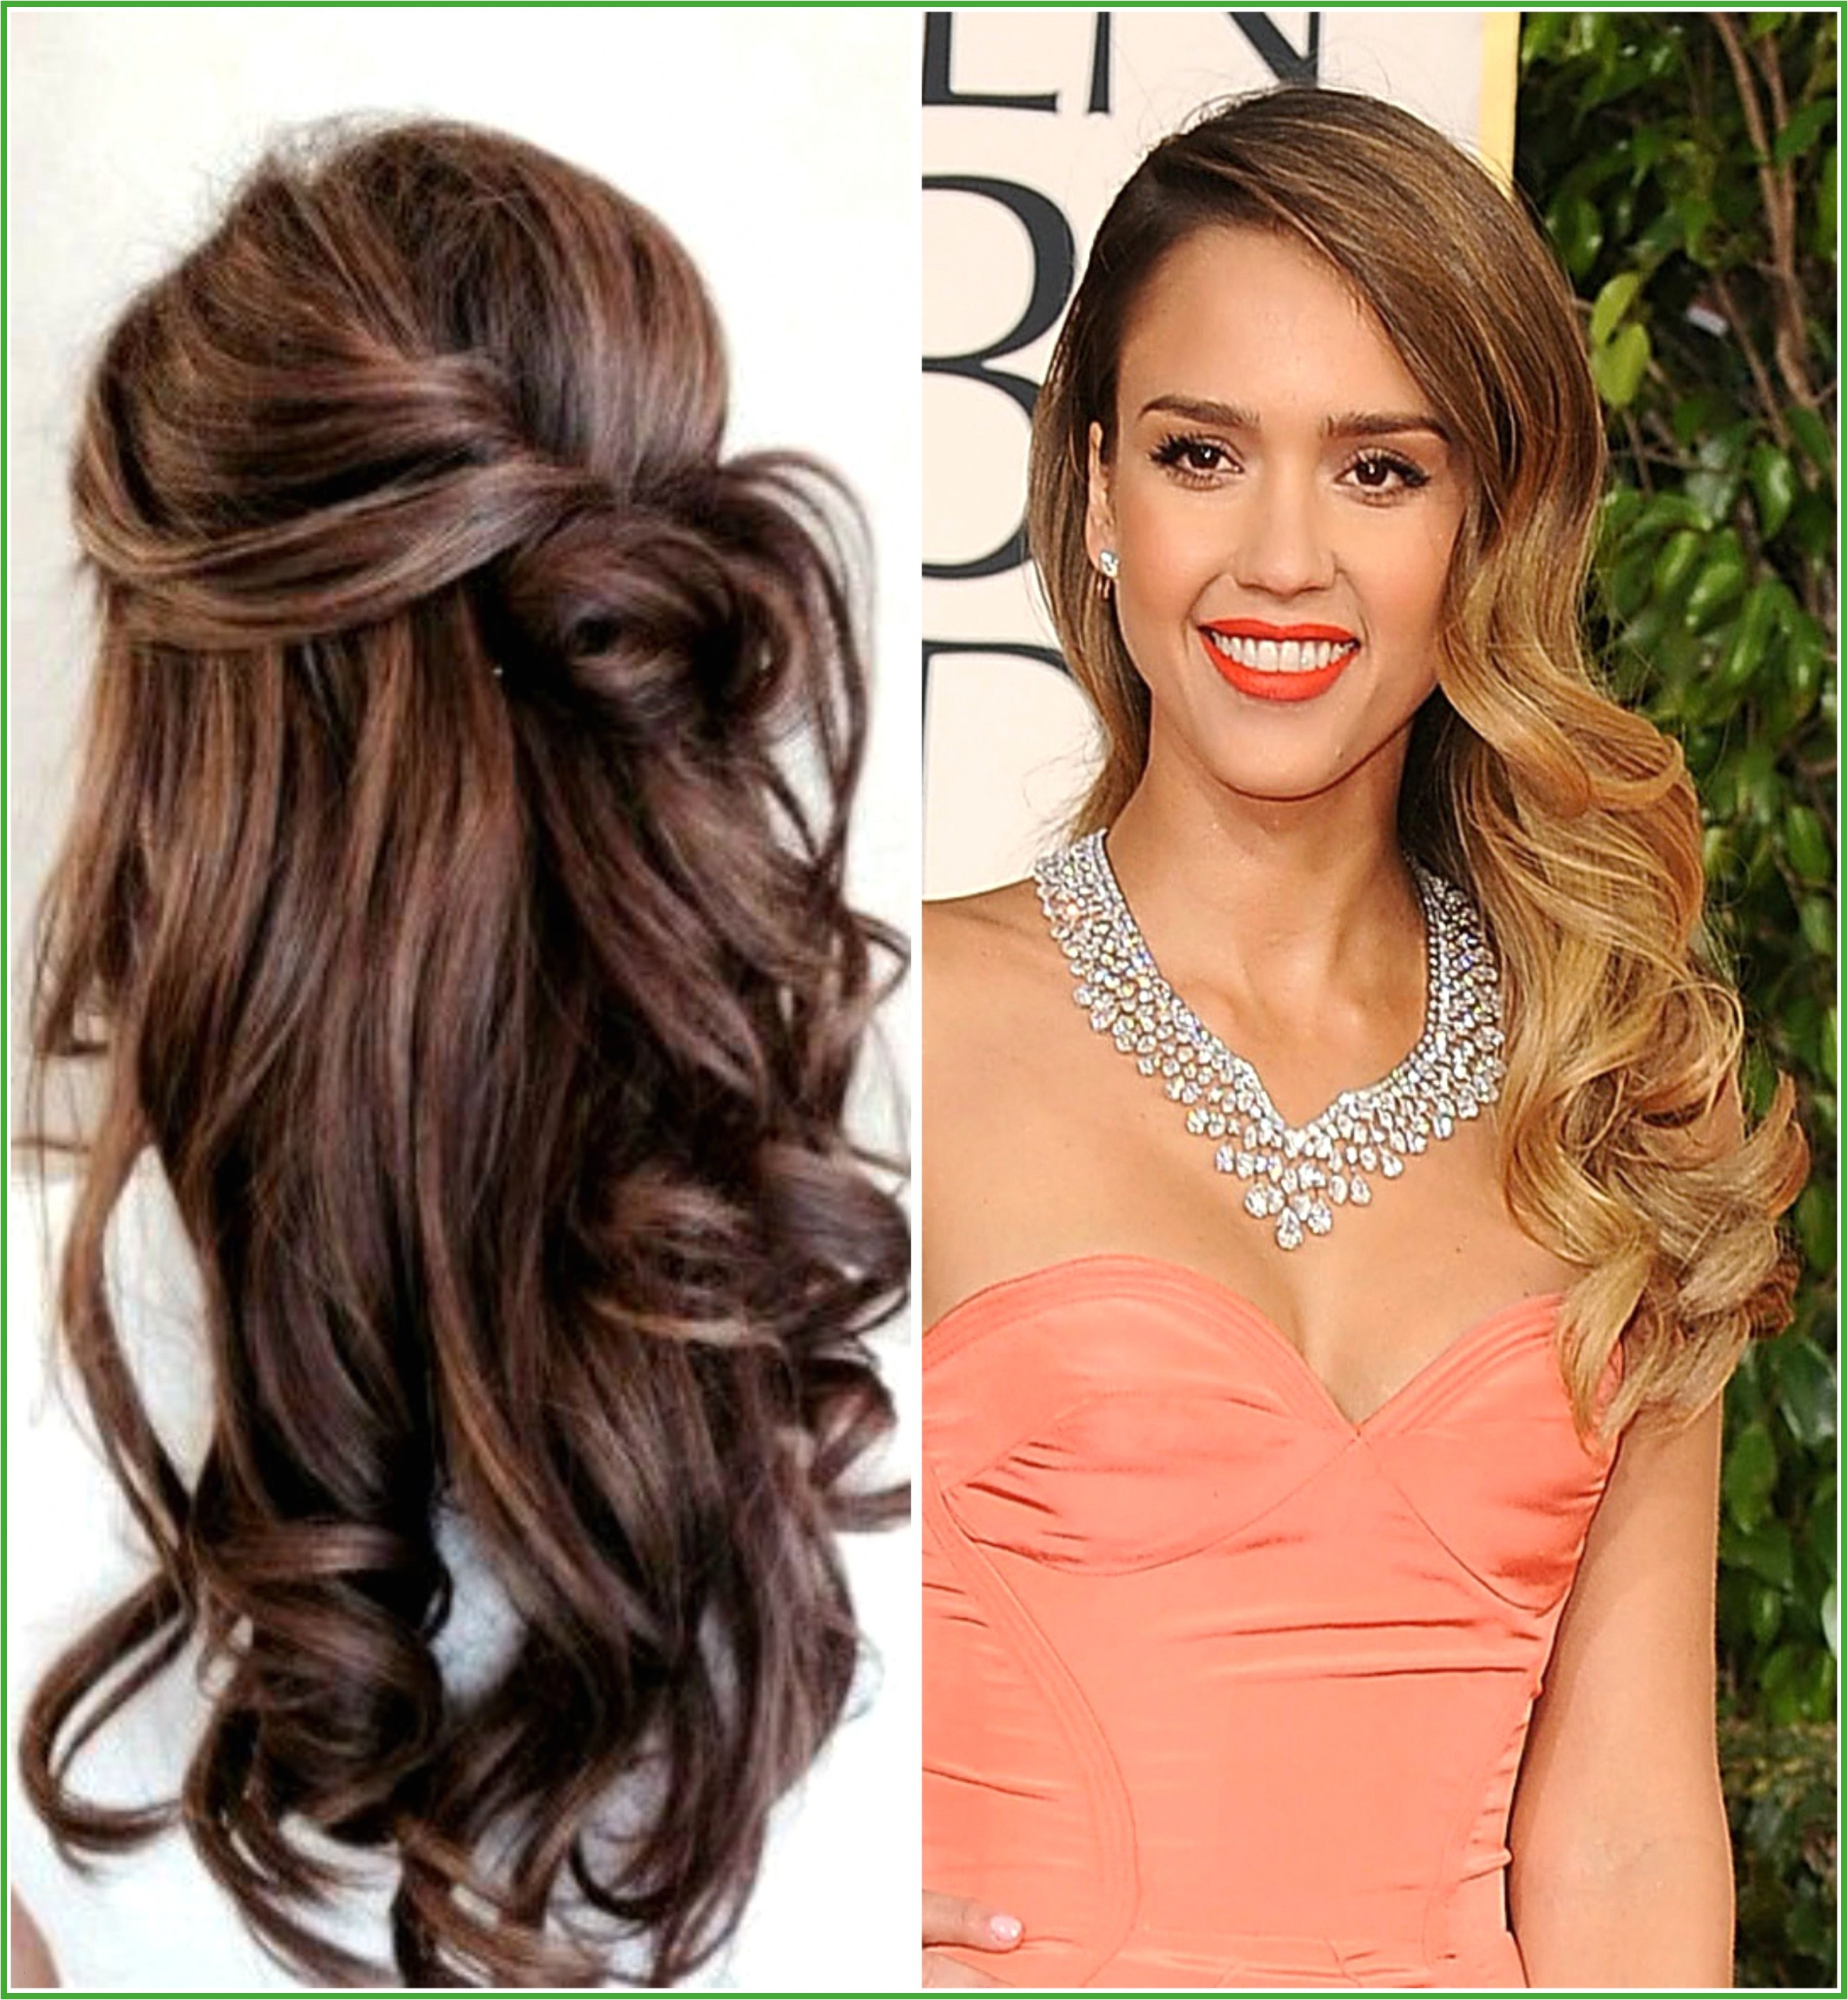 Cool Braided Hairstyles Inspirational 22 Good Braided Hairstyles for No Edges Regrowhairproducts